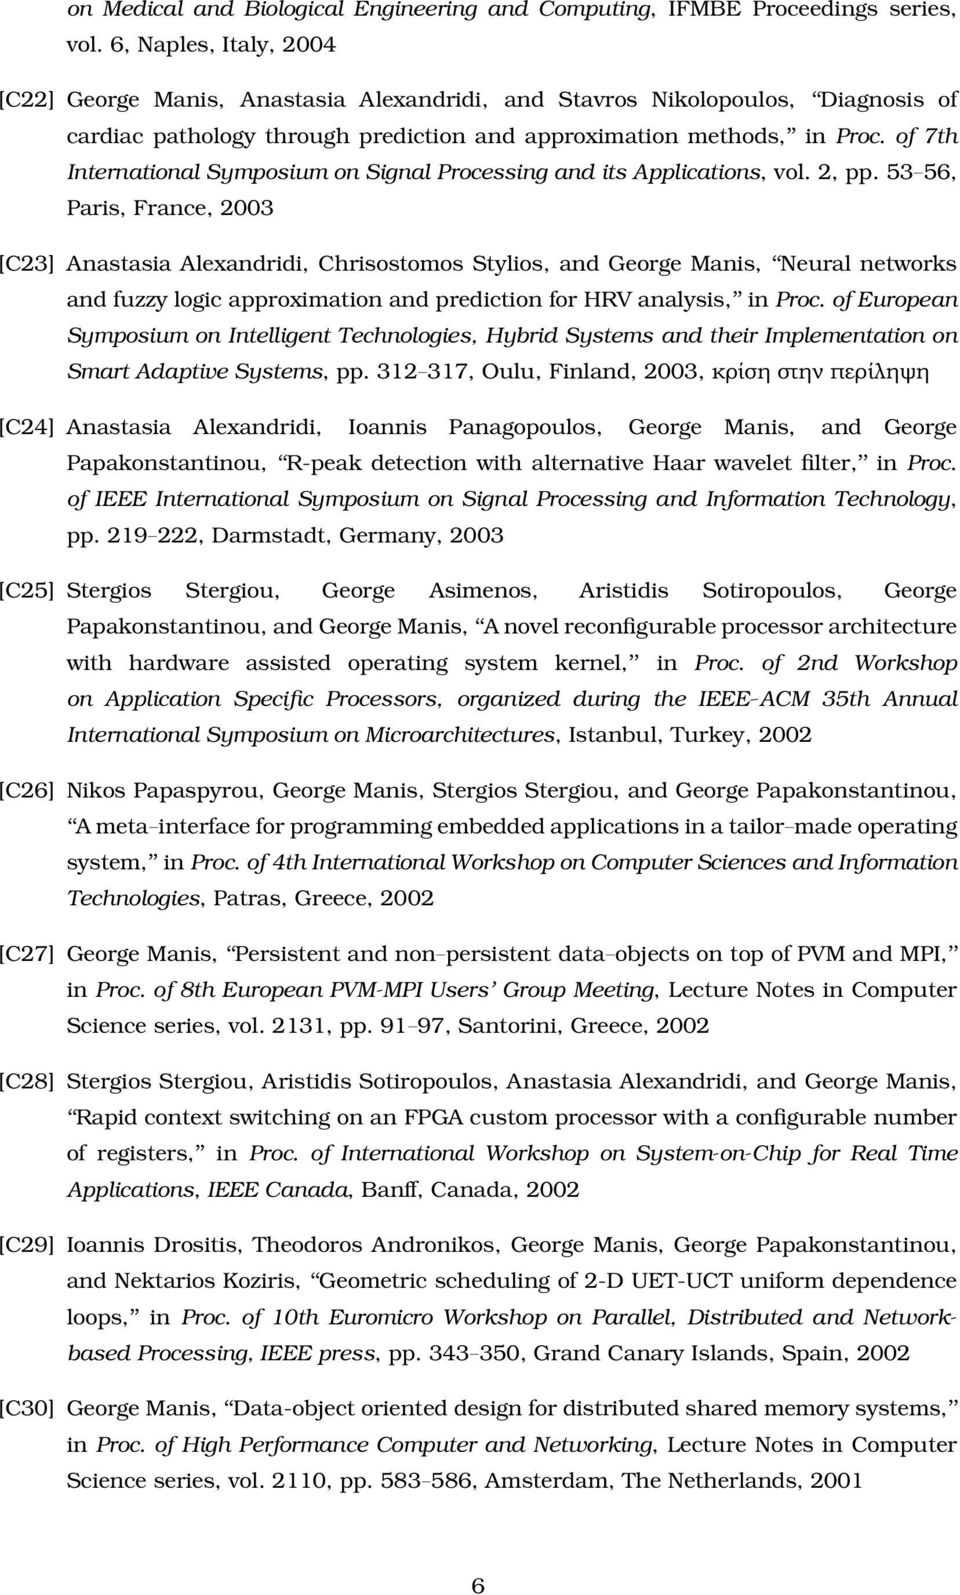 of 7th International Symposium on Signal Processing and its Applications, vol. 2, pp.